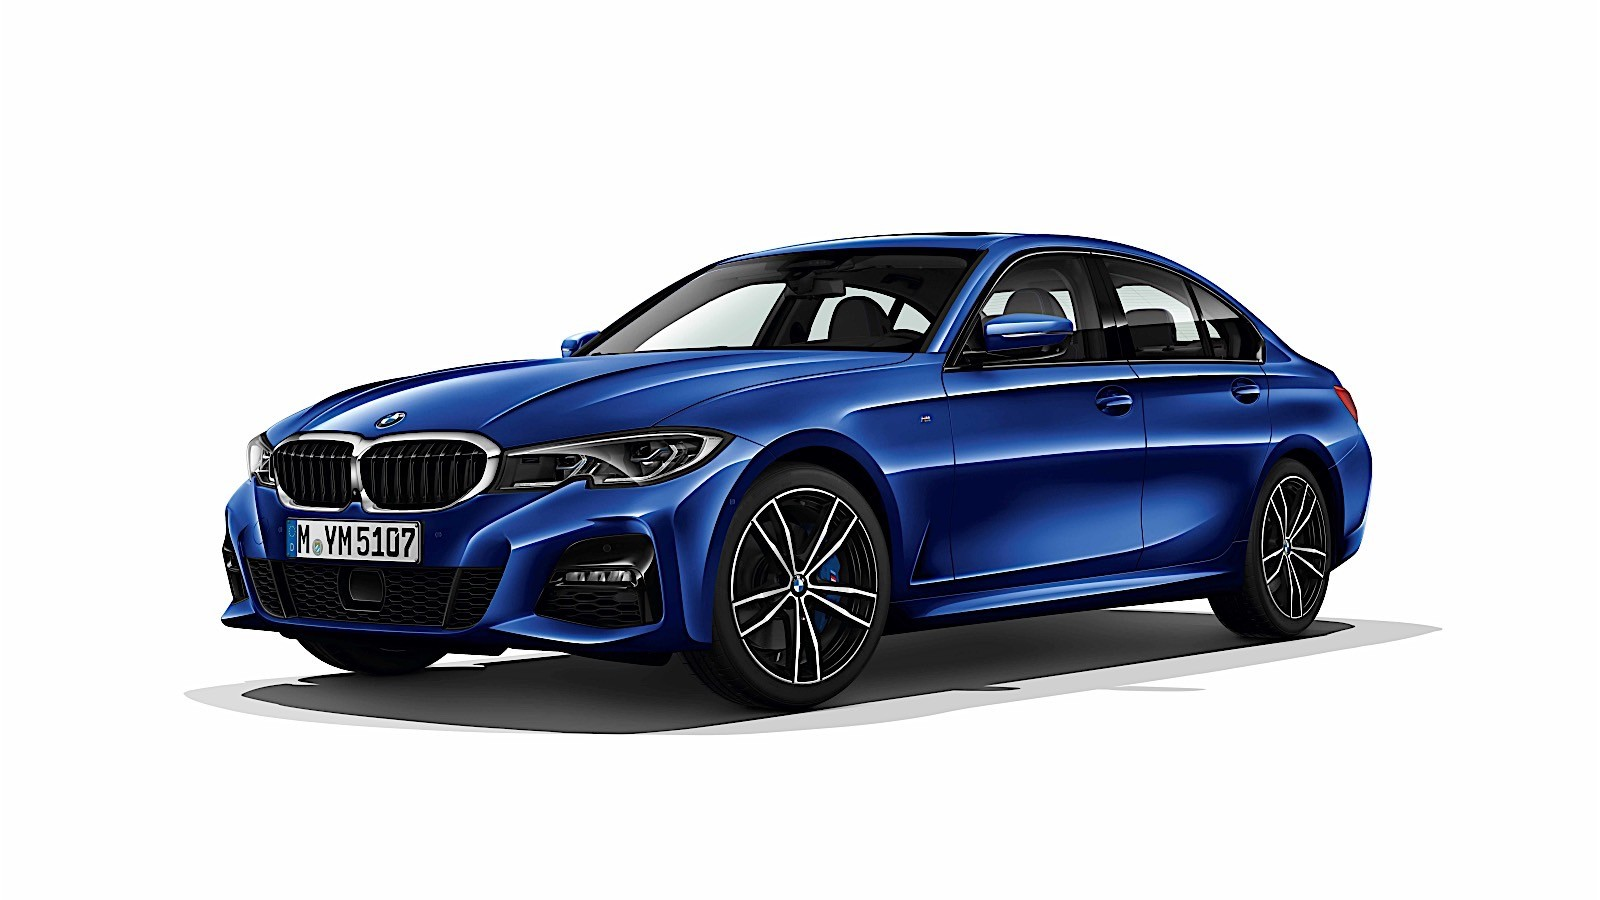 2019 BMW 3 Series Photos Leaked, M340i M Performance Shows